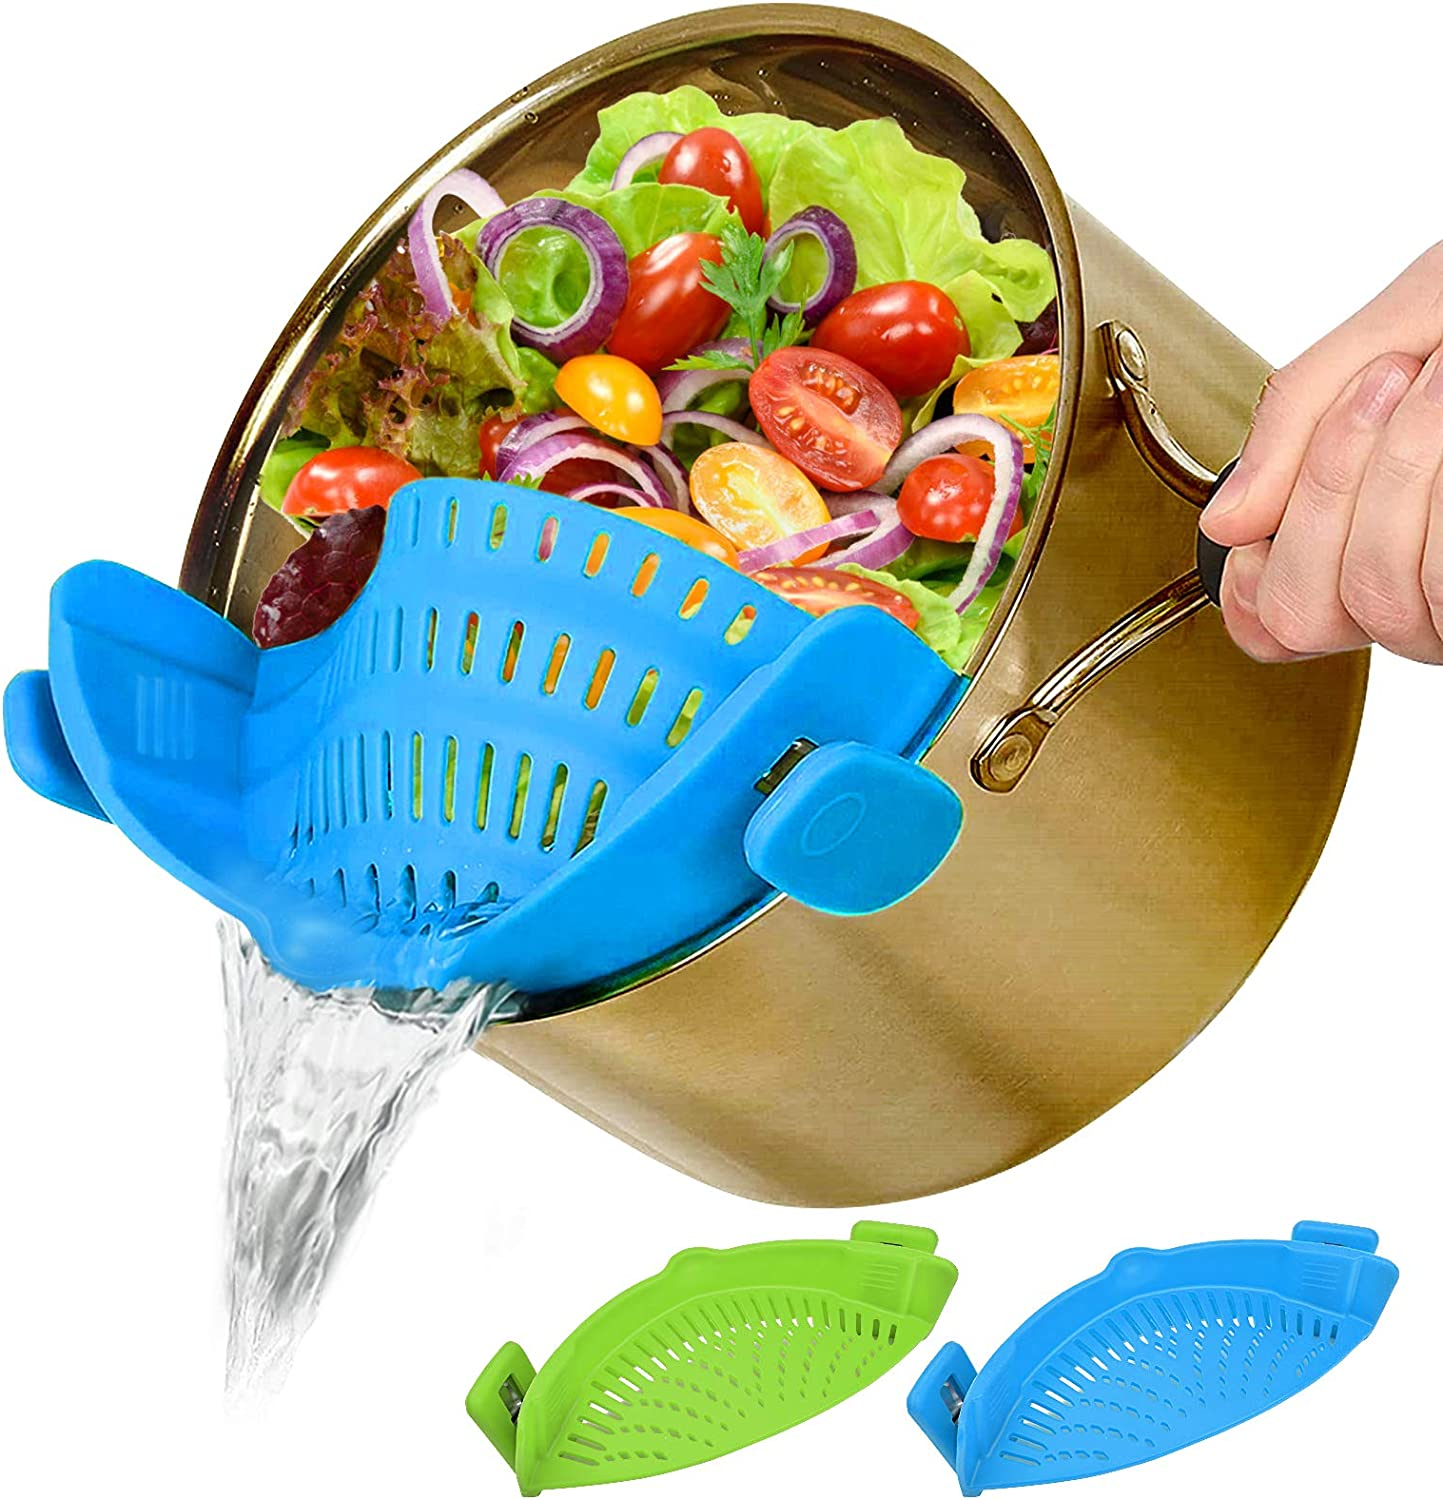 Food Mesh Strainers Fine Strainer 2 PACK, Clip-On Colander Rice Strain Sieve Sifter, Vegetable Silicone Drainer Filter Hands-Free Heat-Resistant for Kitchen All Pots Bowls, Pasta Ground Beef Spaghetti